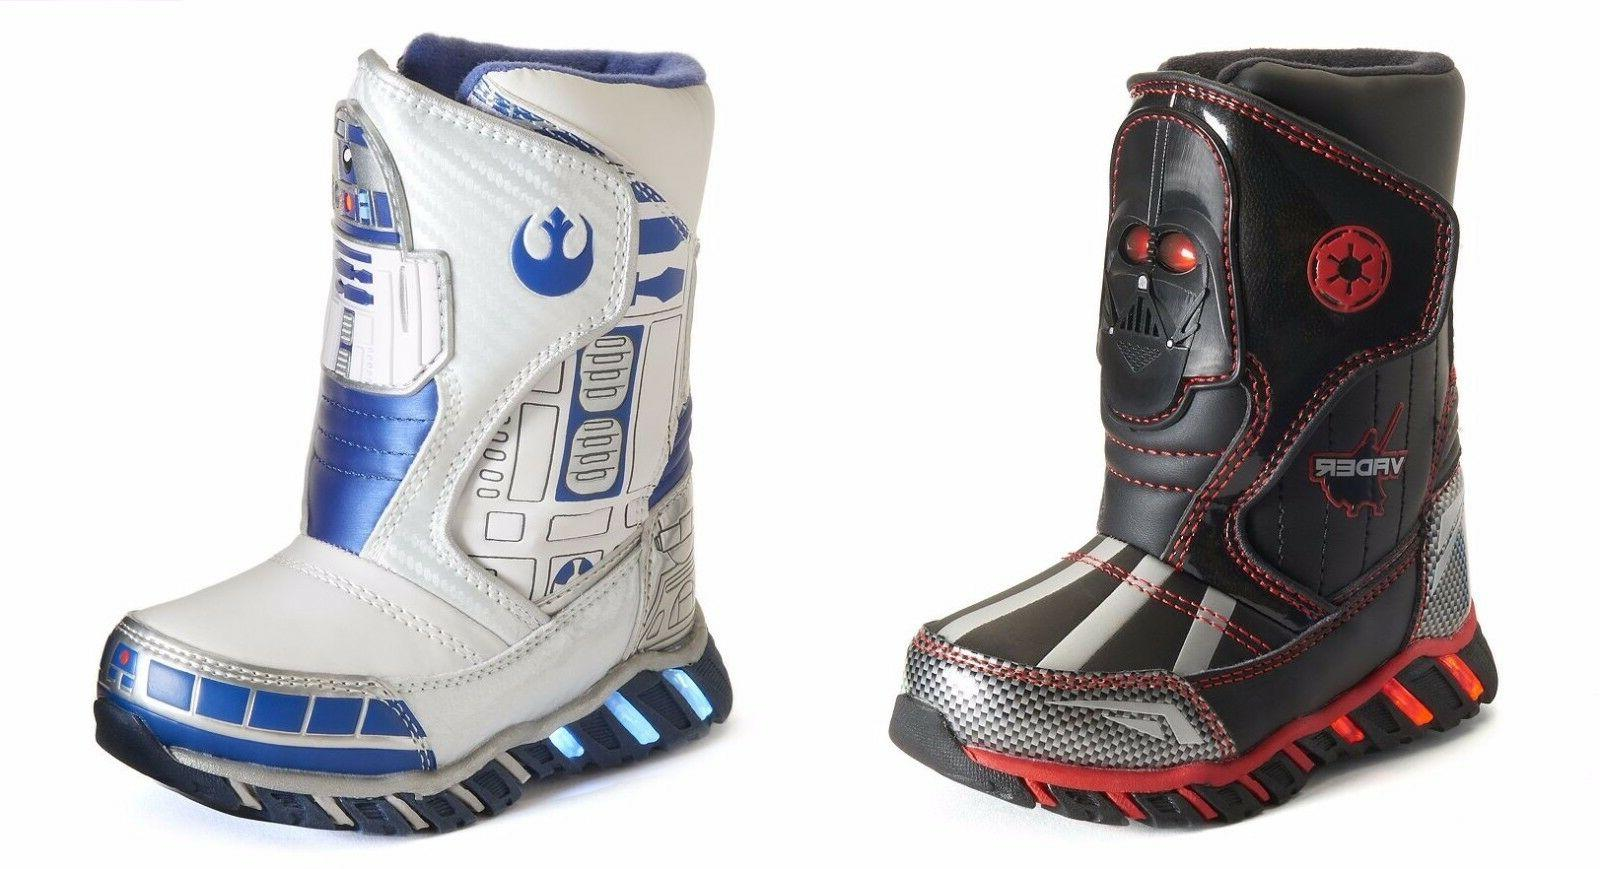 star wars snow boots size 7 or